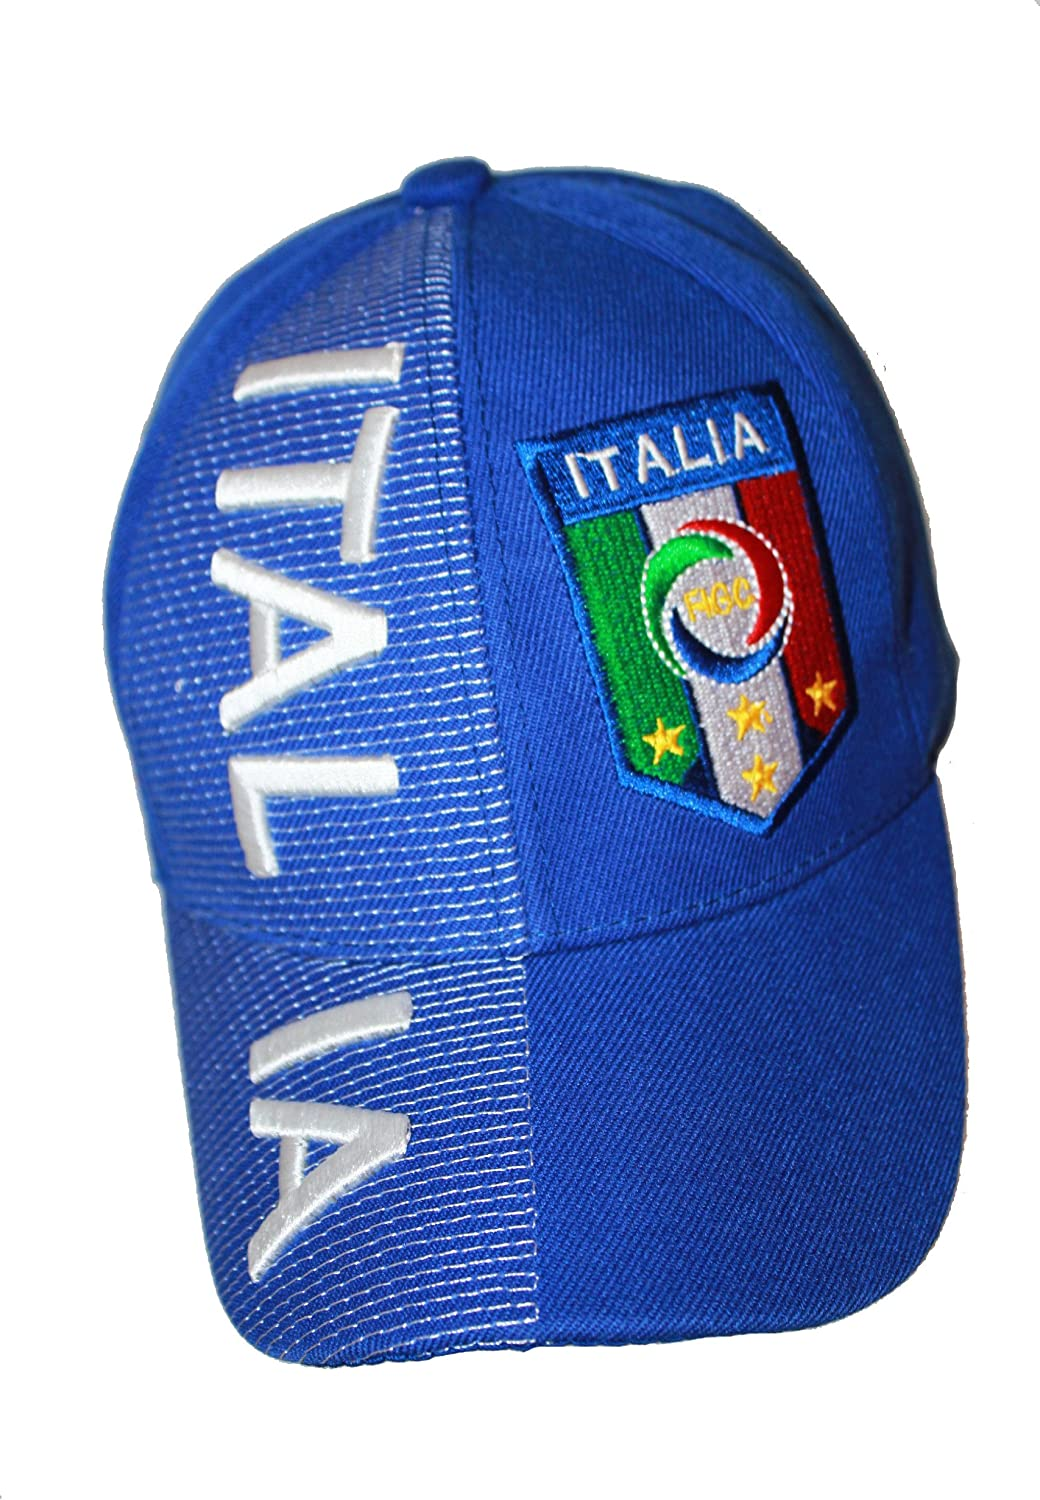 New SUPERDAVES SUPERSTORE Italy Italia FIGC Logo Towel 56 X 28 .